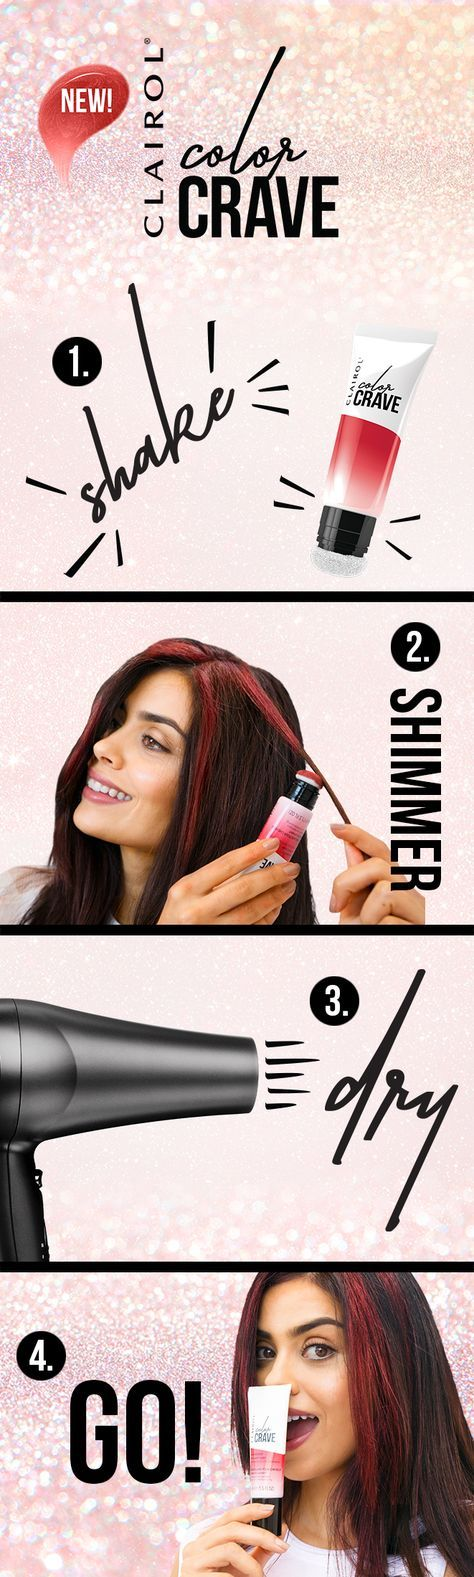 Flaunt your style with Clairol's new Color Crave hair makeup. The 1 day color that washes out with shampoo.